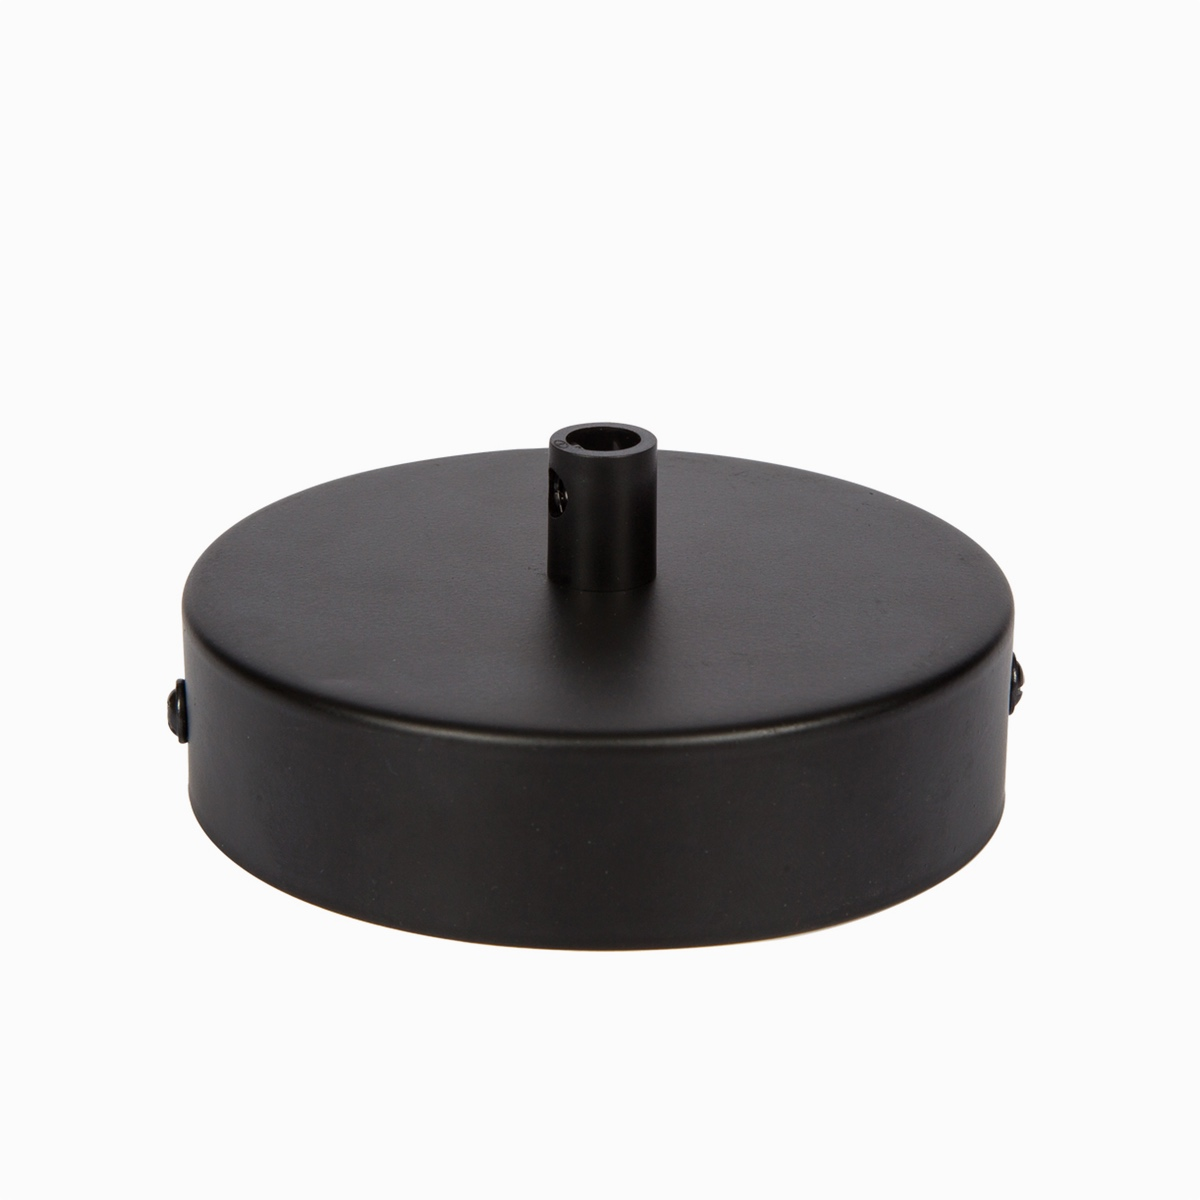 Ceiling Rose Matt Black